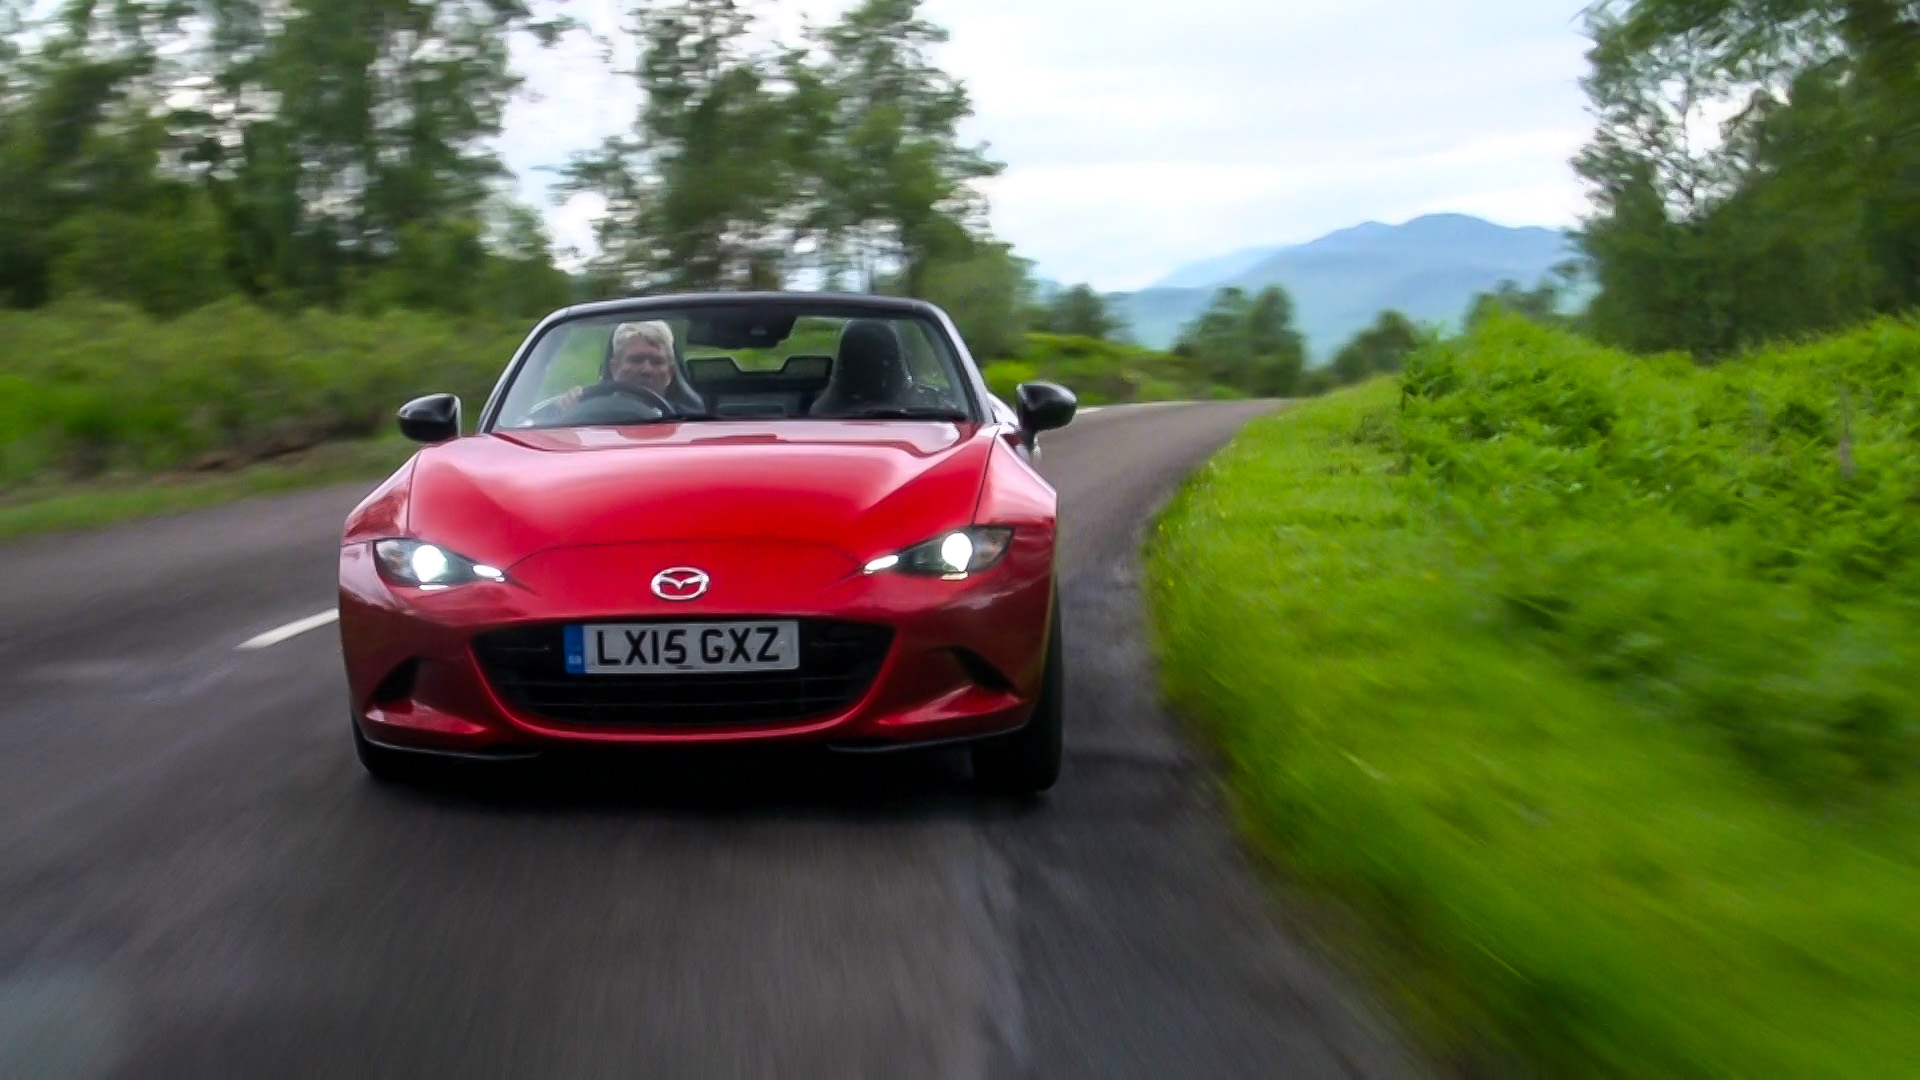 2016 Mazda Mx 5 Test Drive (View 10 of 31)